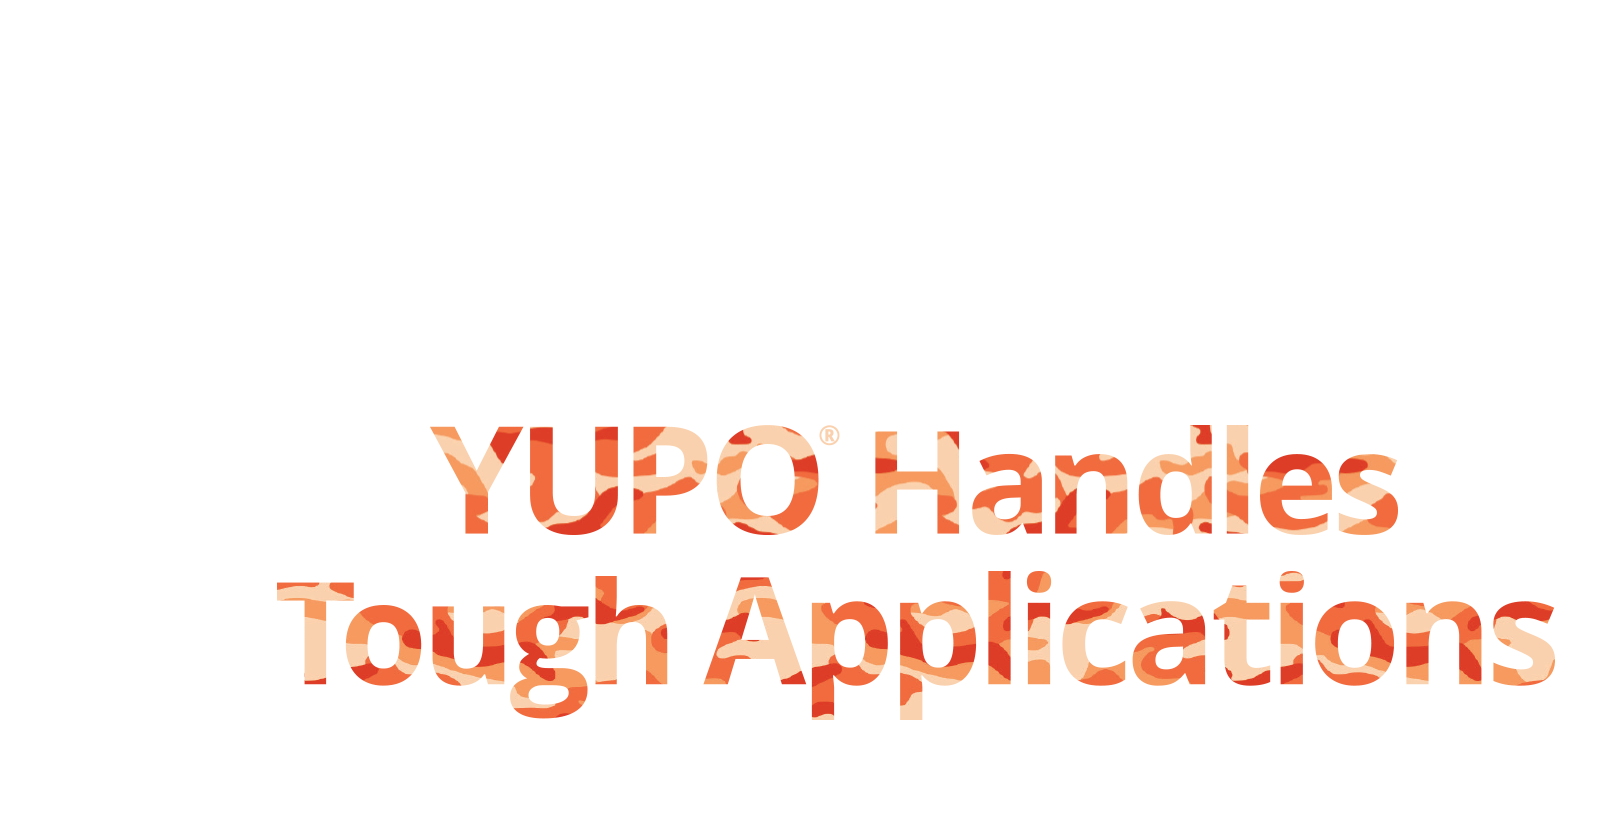 YUPO Handles Tough Applications